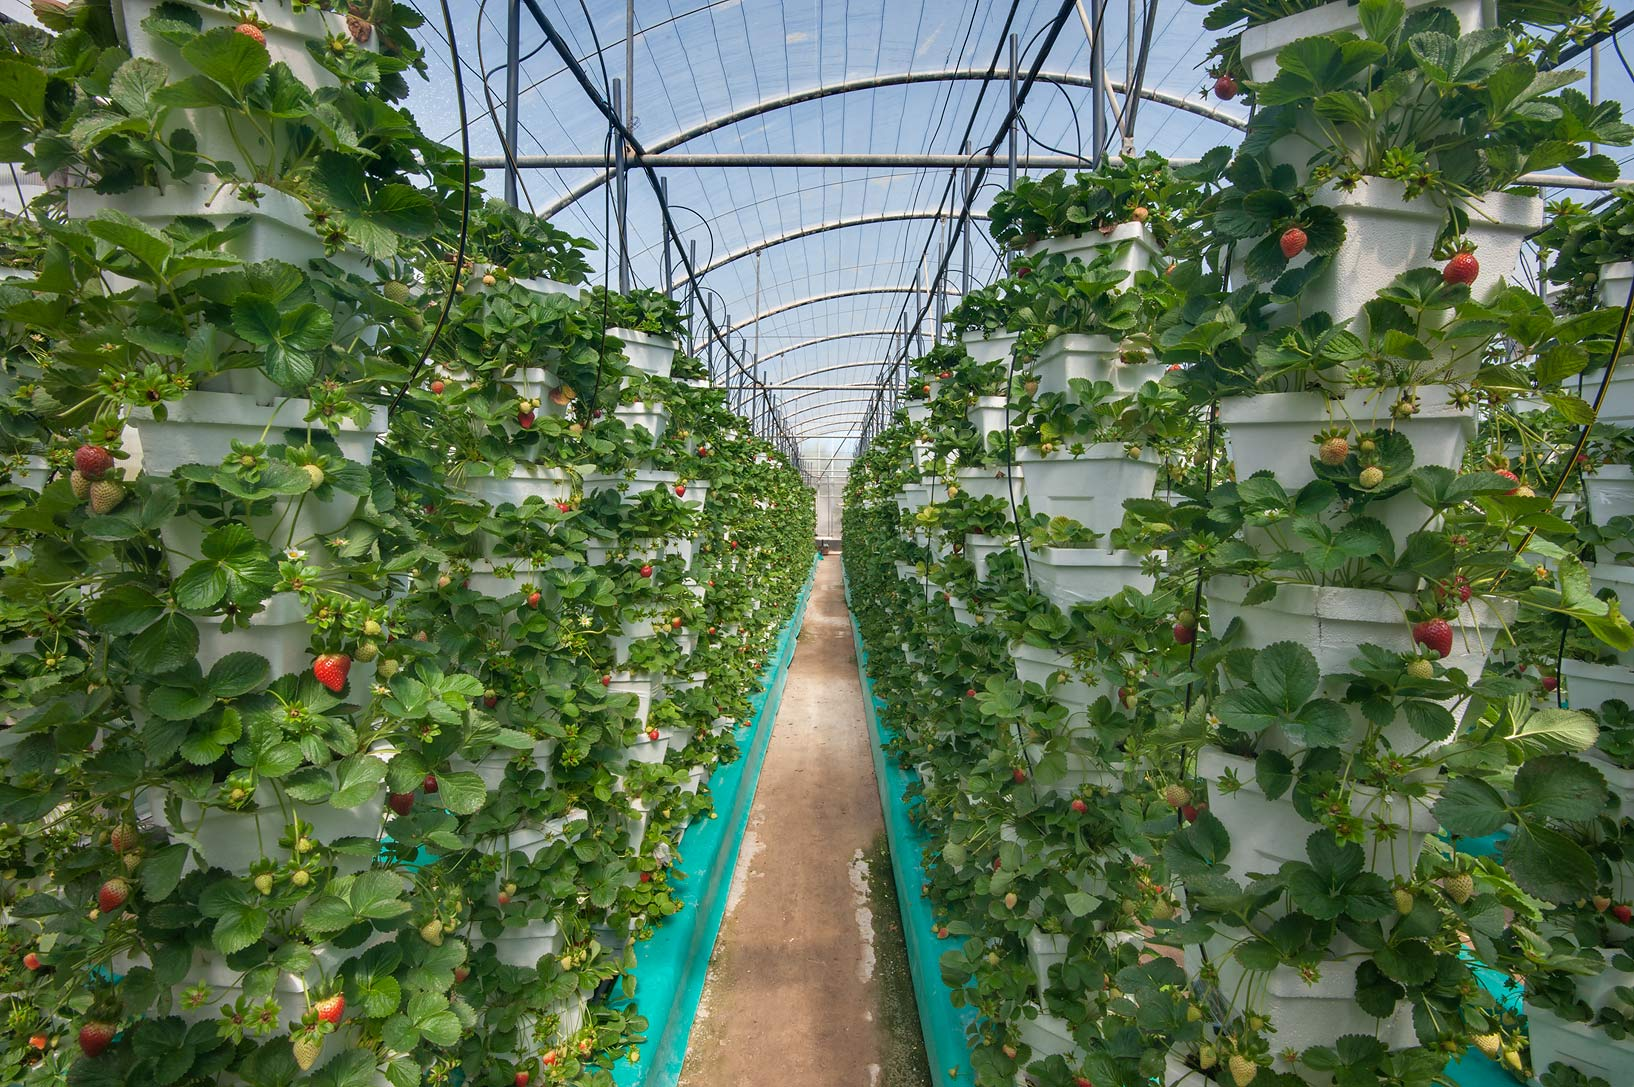 Strawberry growing on hydroponics in a greenhouse in Sulaiteen Farm. Doha, Qatar